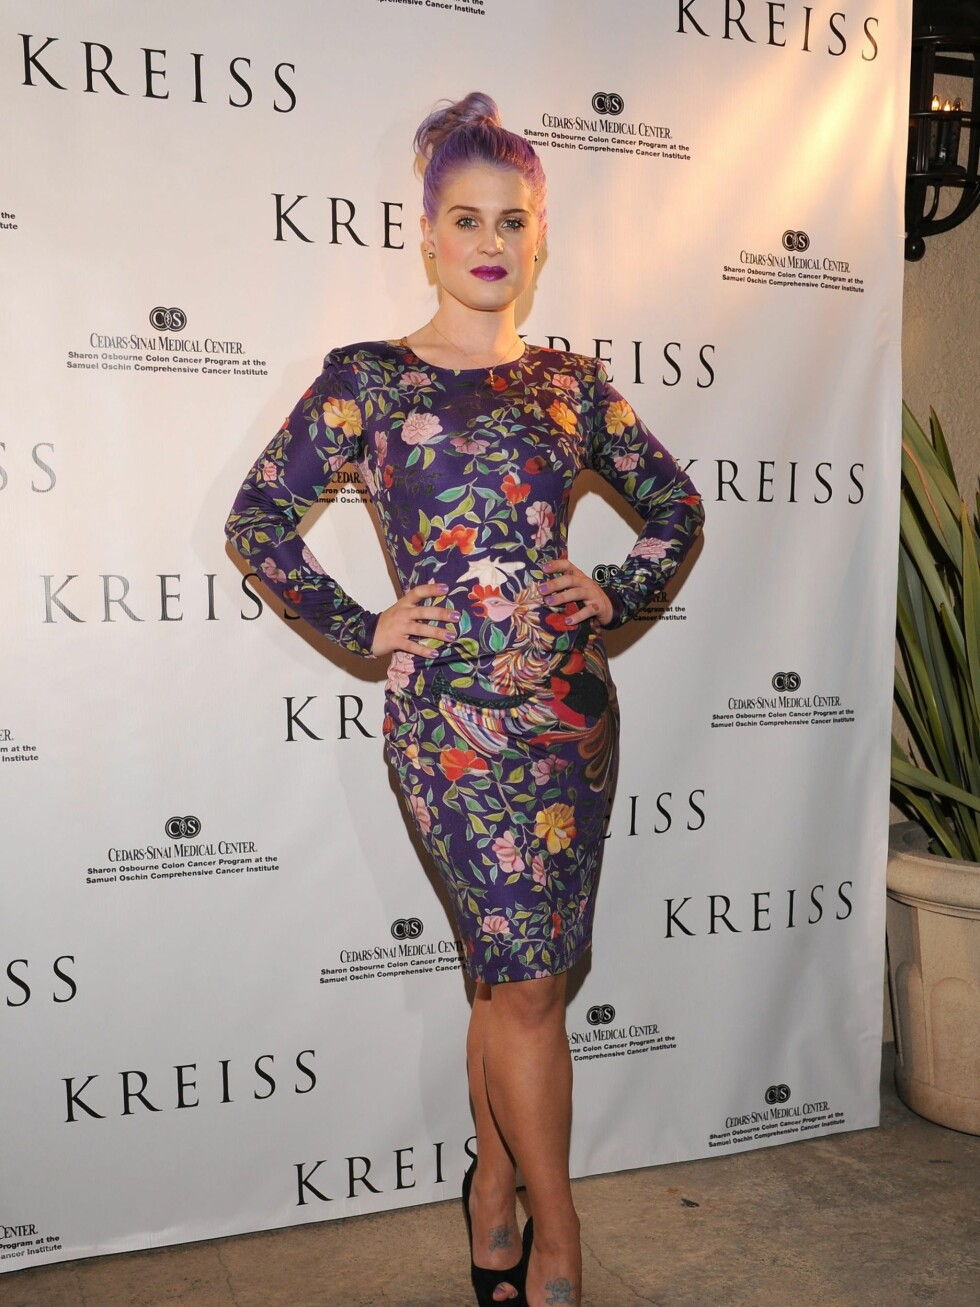 LOS ANGELES, CA - APRIL 19:  Kelly Osbourne arrives for Kreiss 75th Anniversary Celebration at Kreiss on April 19, 2012 in Los Angeles, California.  (Photo by Mark Sullivan/WireImage) Foto: All Over Press